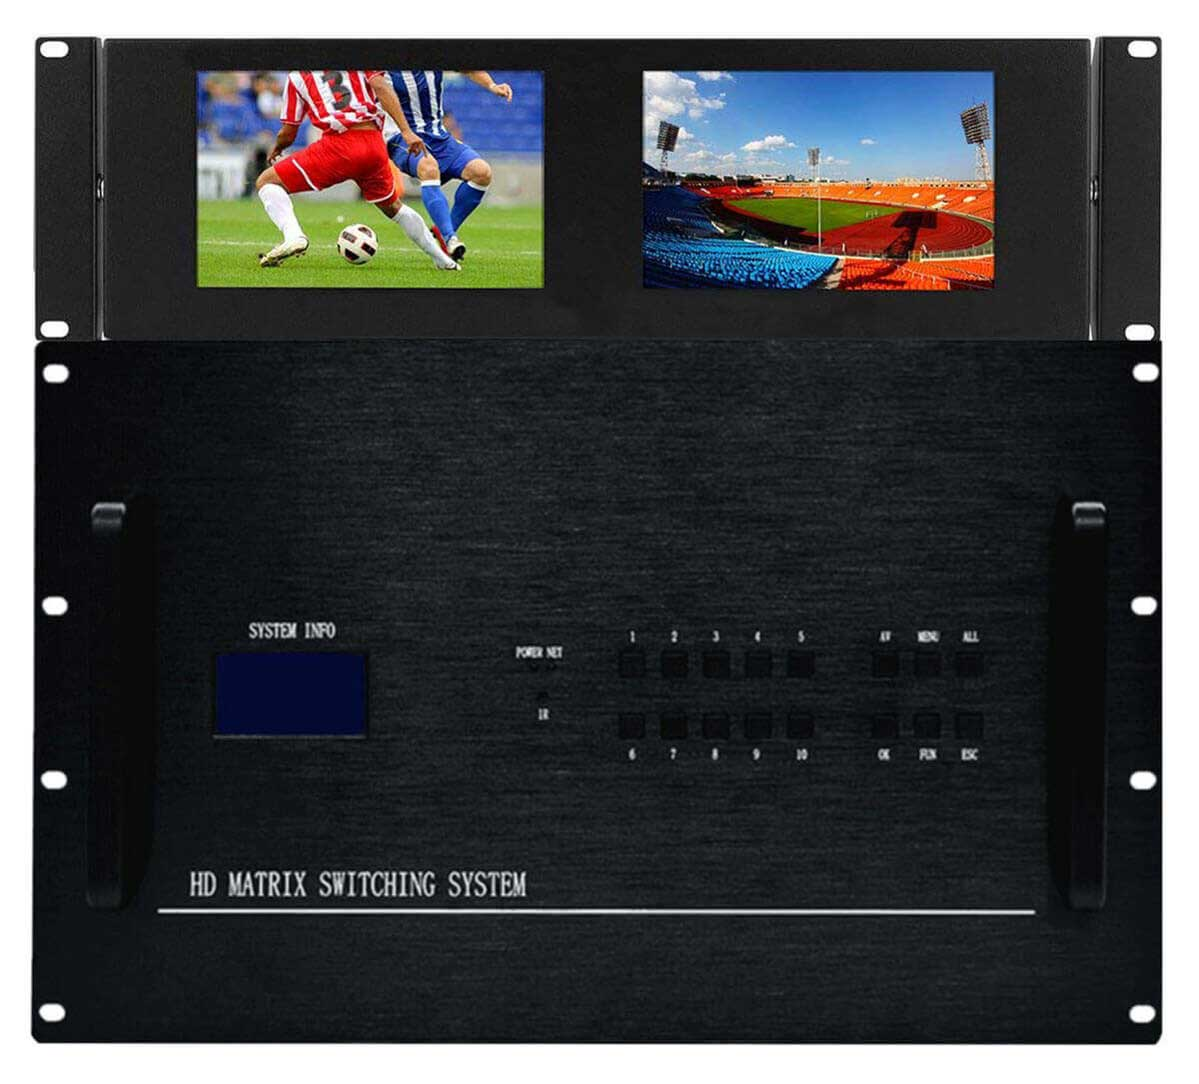 4K 28x4 HDMI Matrix HDBaseT Switch with 4-CAT5 Extenders